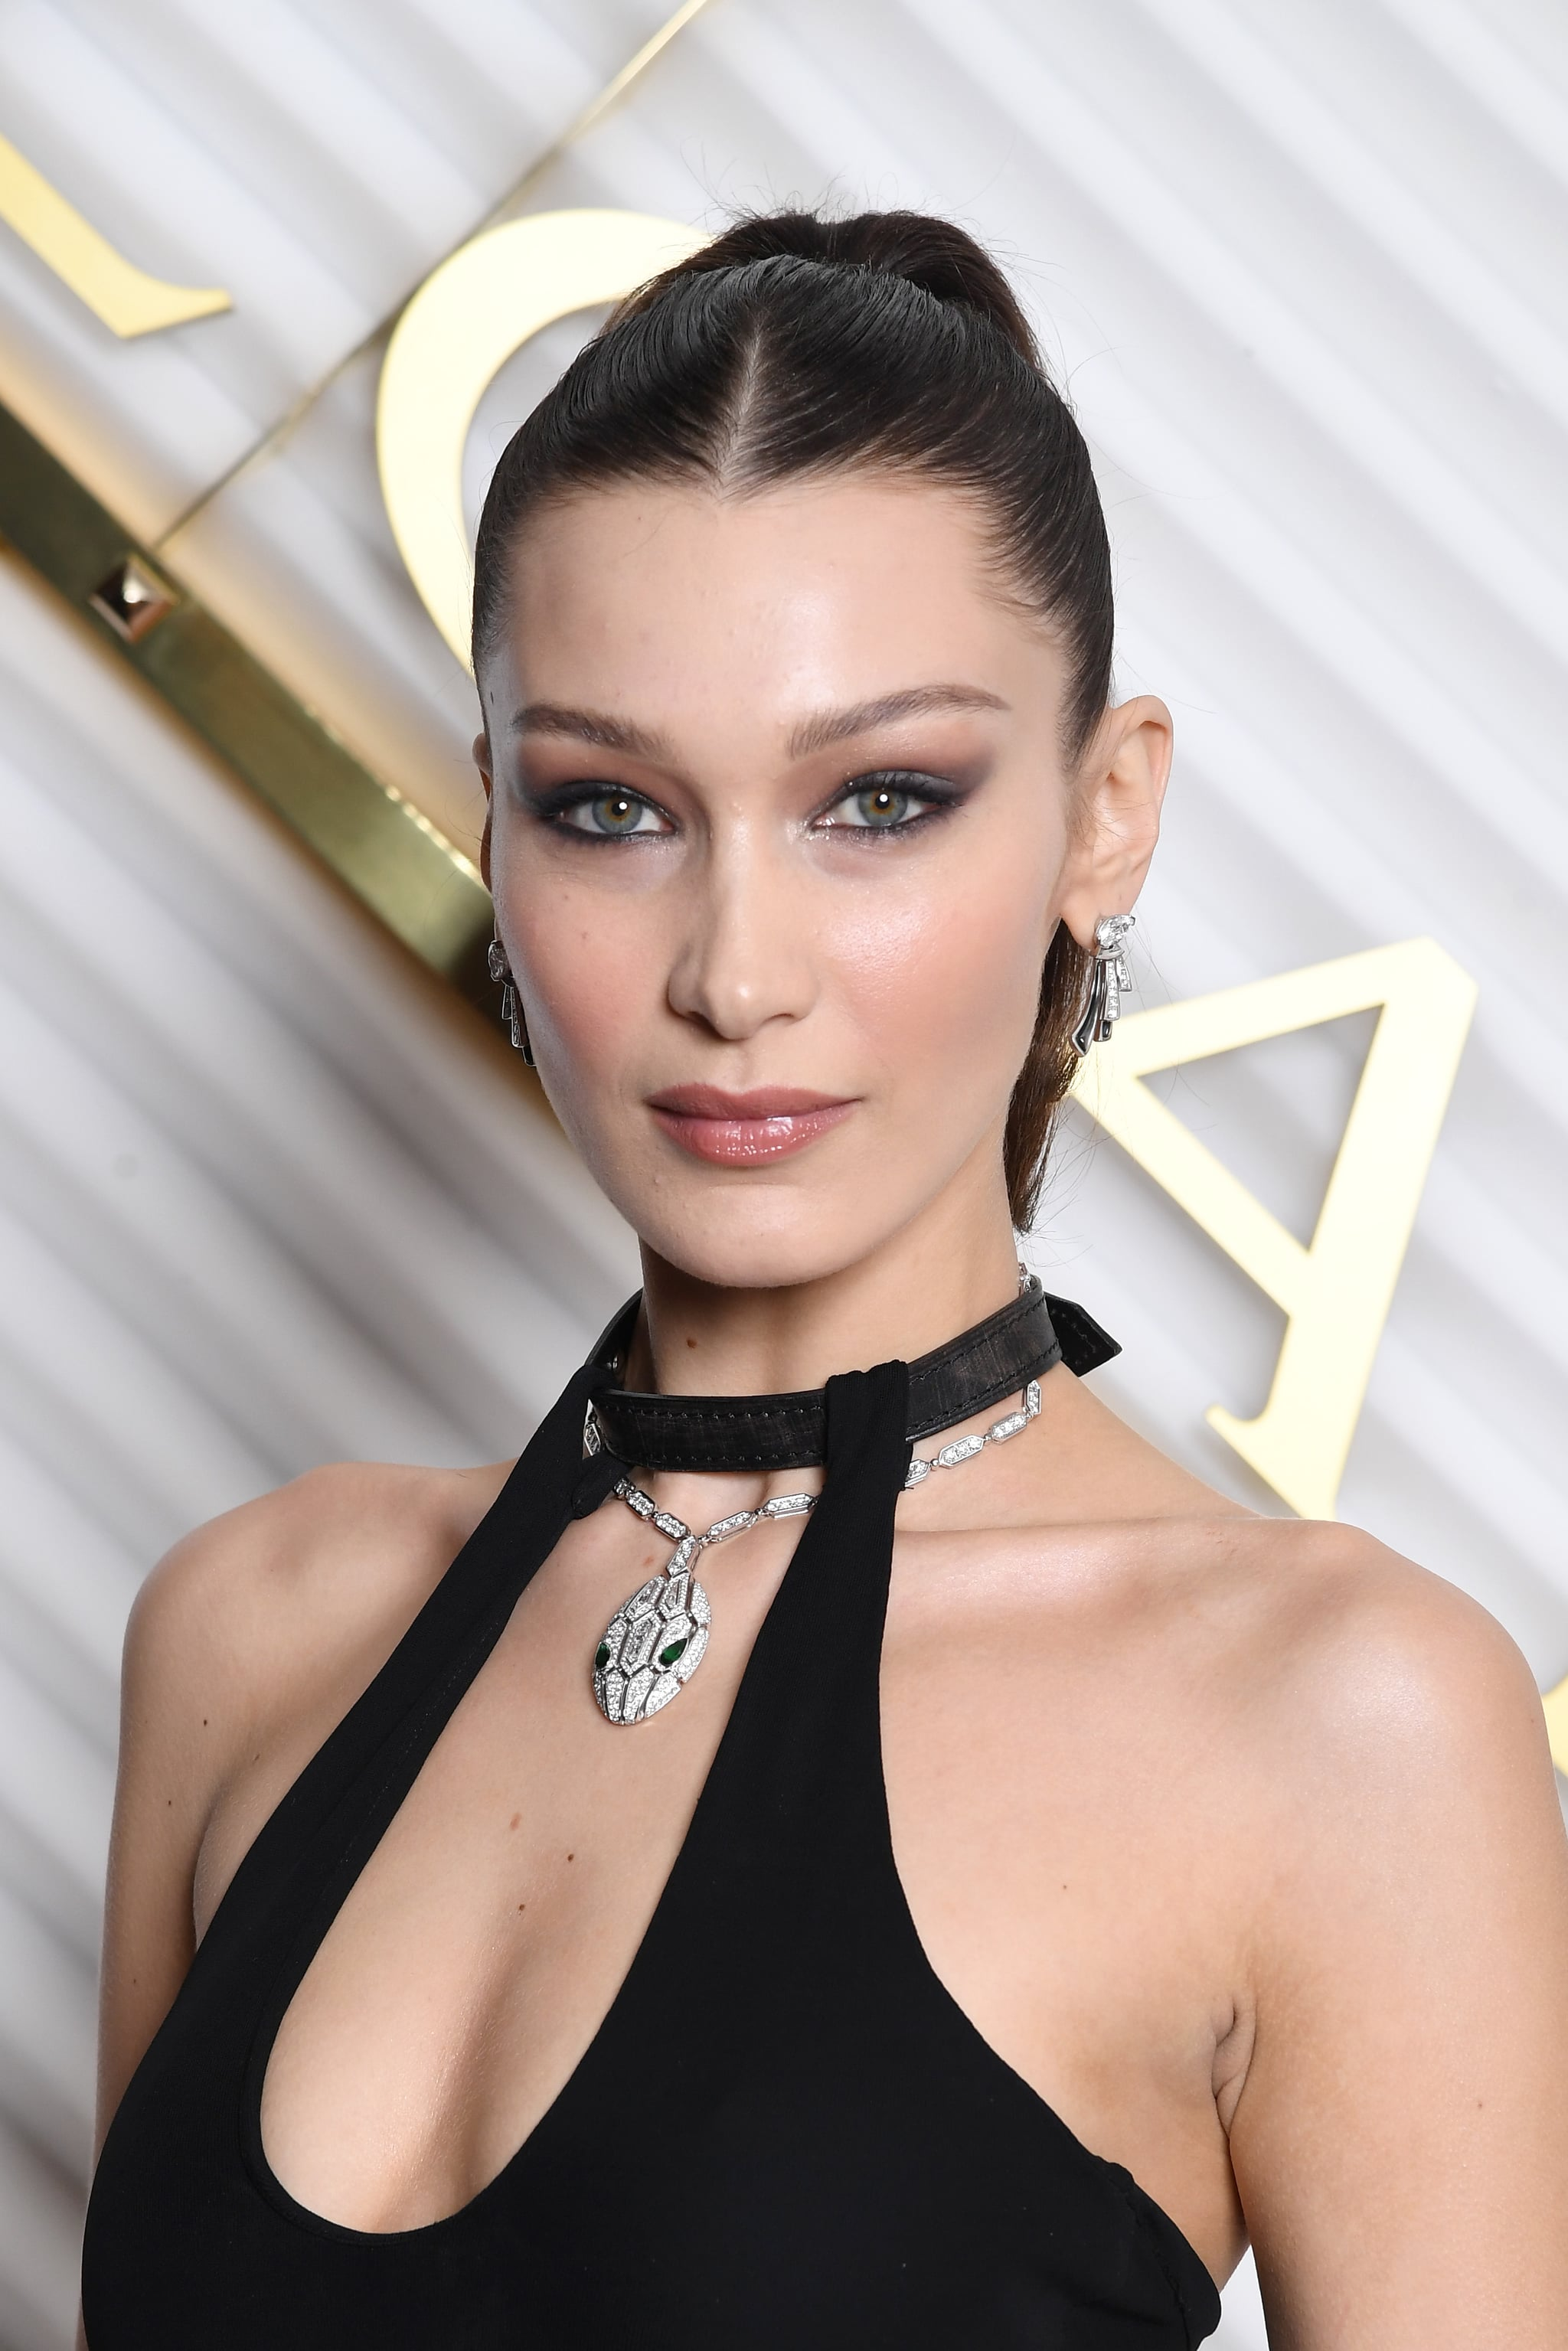 MILAN, ITALY - FEBRUARY 22: Bella Hadid attends BVLGARI - Dinner Party - Milan Fashion Week FW19 on February 22, 2019 in Milan, Italy. (Photo by Daniele Venturelli/Daniele Venturelli/Getty Images for BVLGARI )